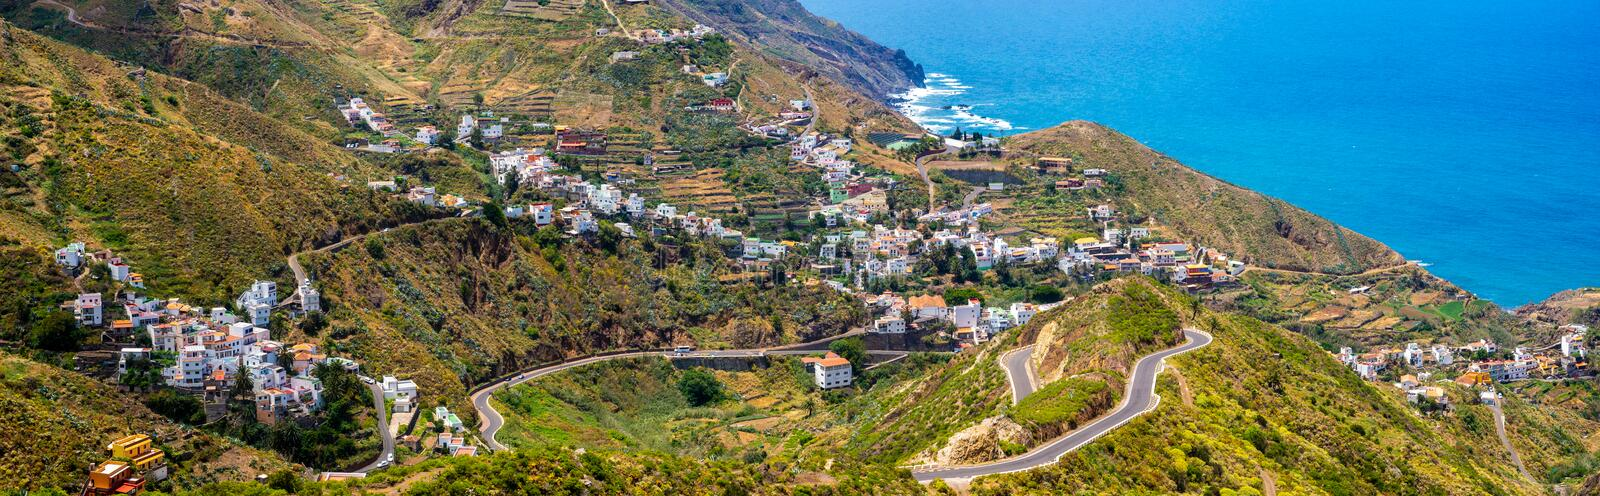 beautiful view of the Taganana village in Anaga mountains, Tenerife, Canary Islands,Spain-Panorama royalty free stock image